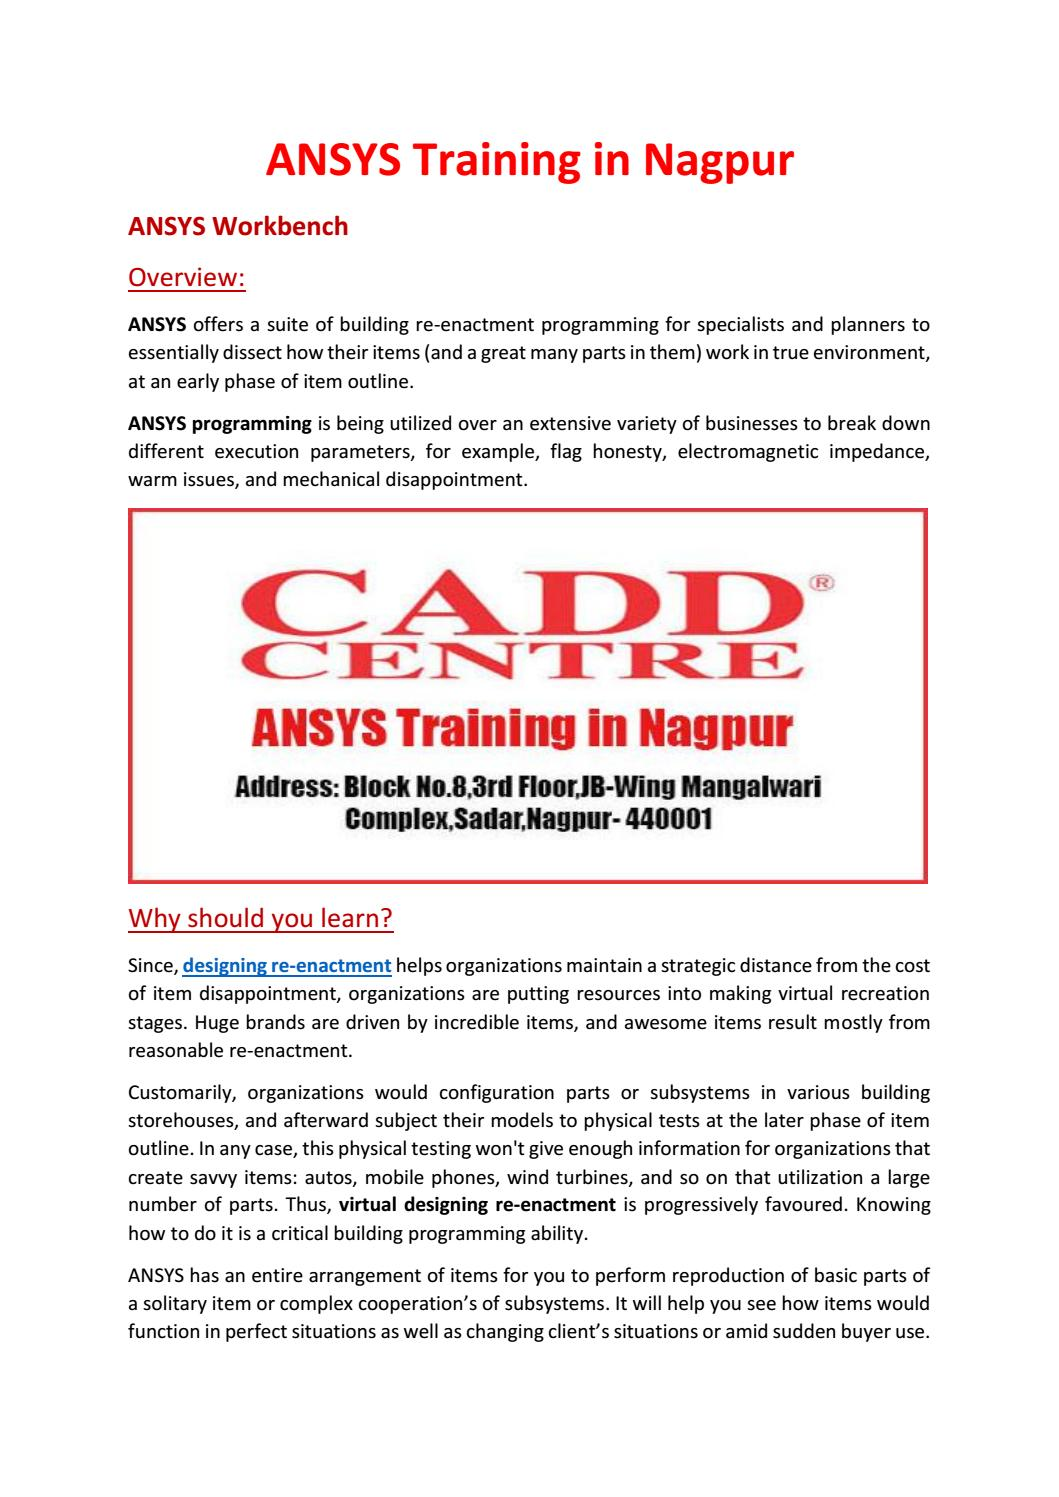 Ansys training in nagpur by caddcentrenag - issuu